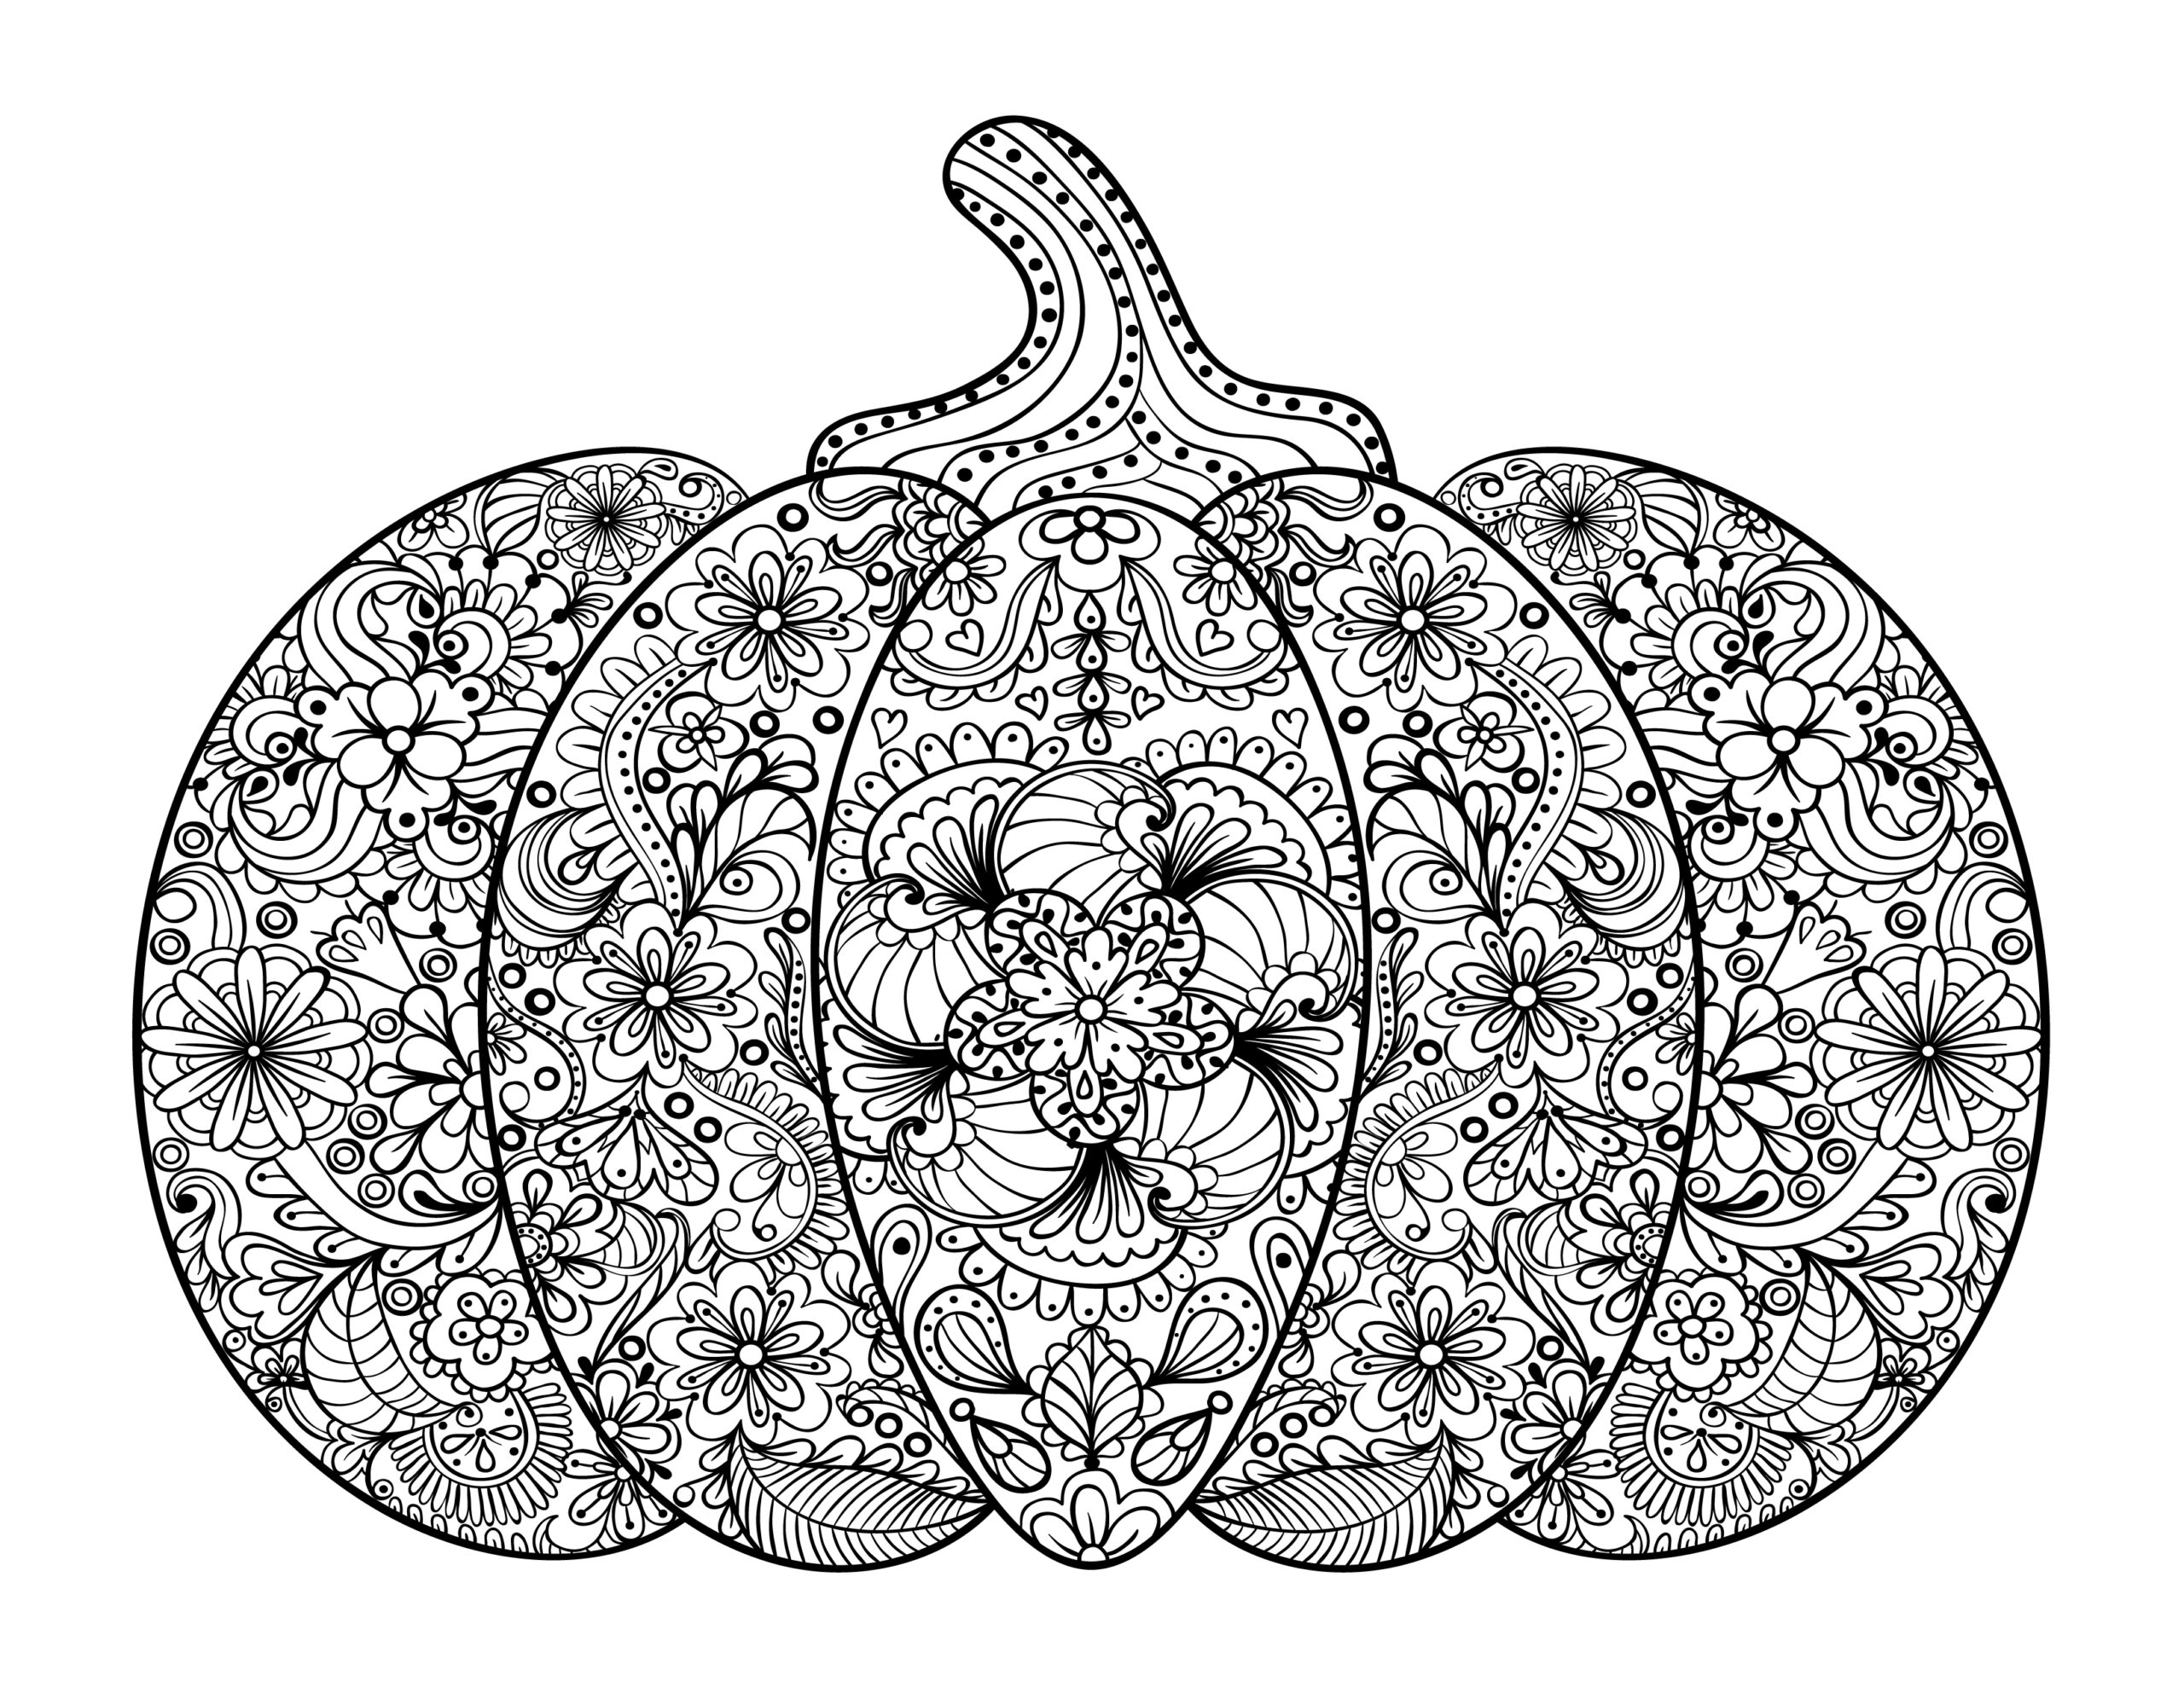 Free Adult Coloring Pages- Pumpkin Delight!